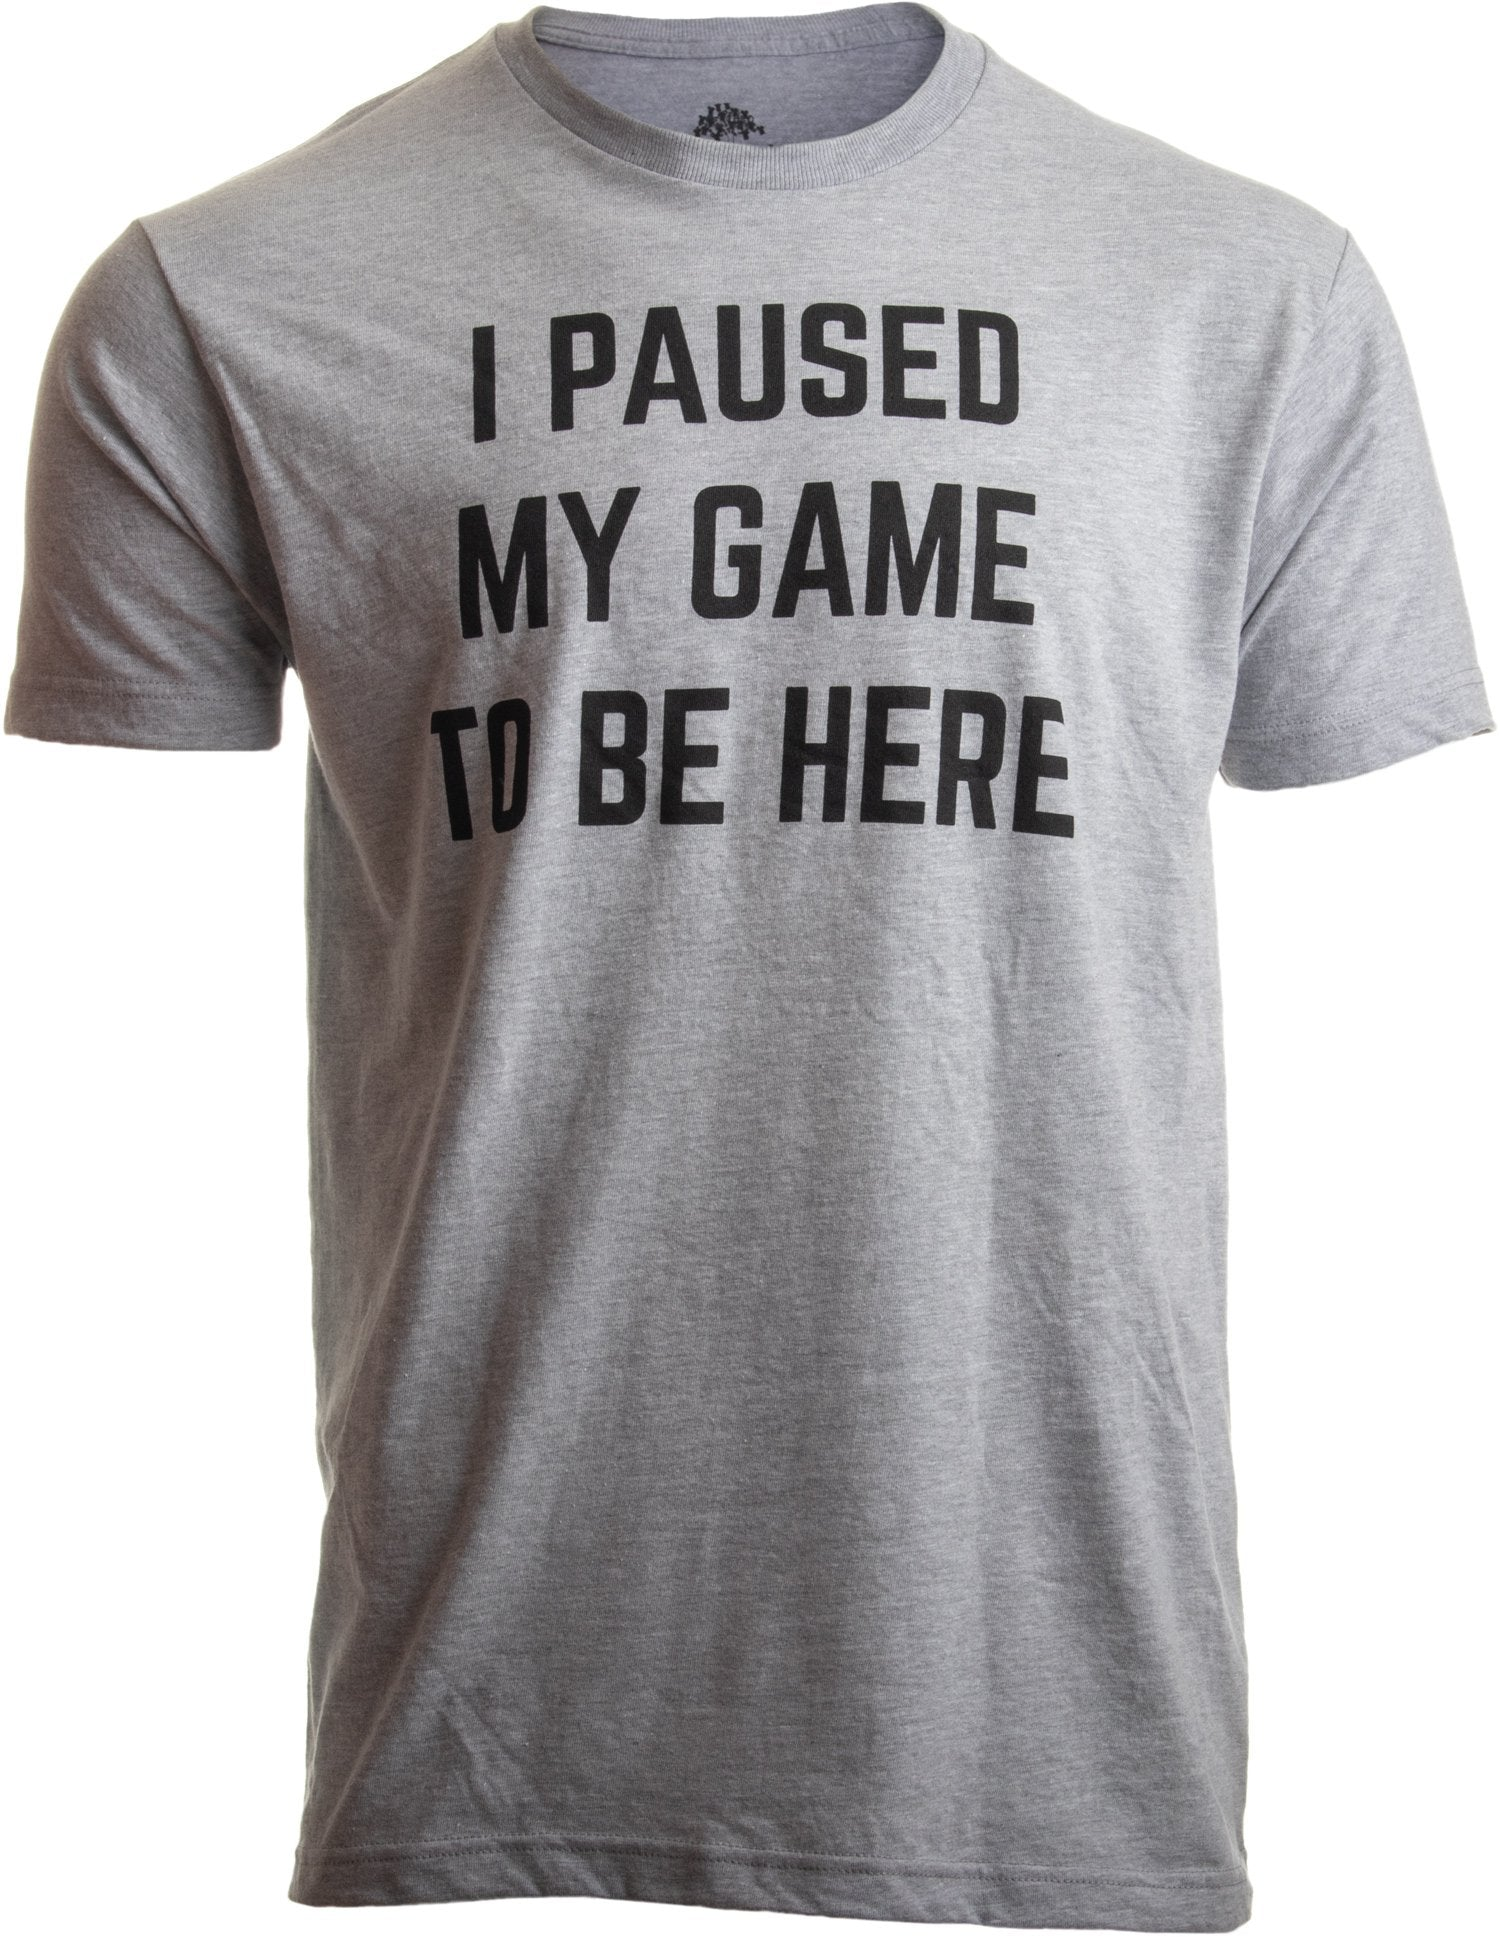 I Paused My Game to Be Here | Funny Gamer T-Shirt